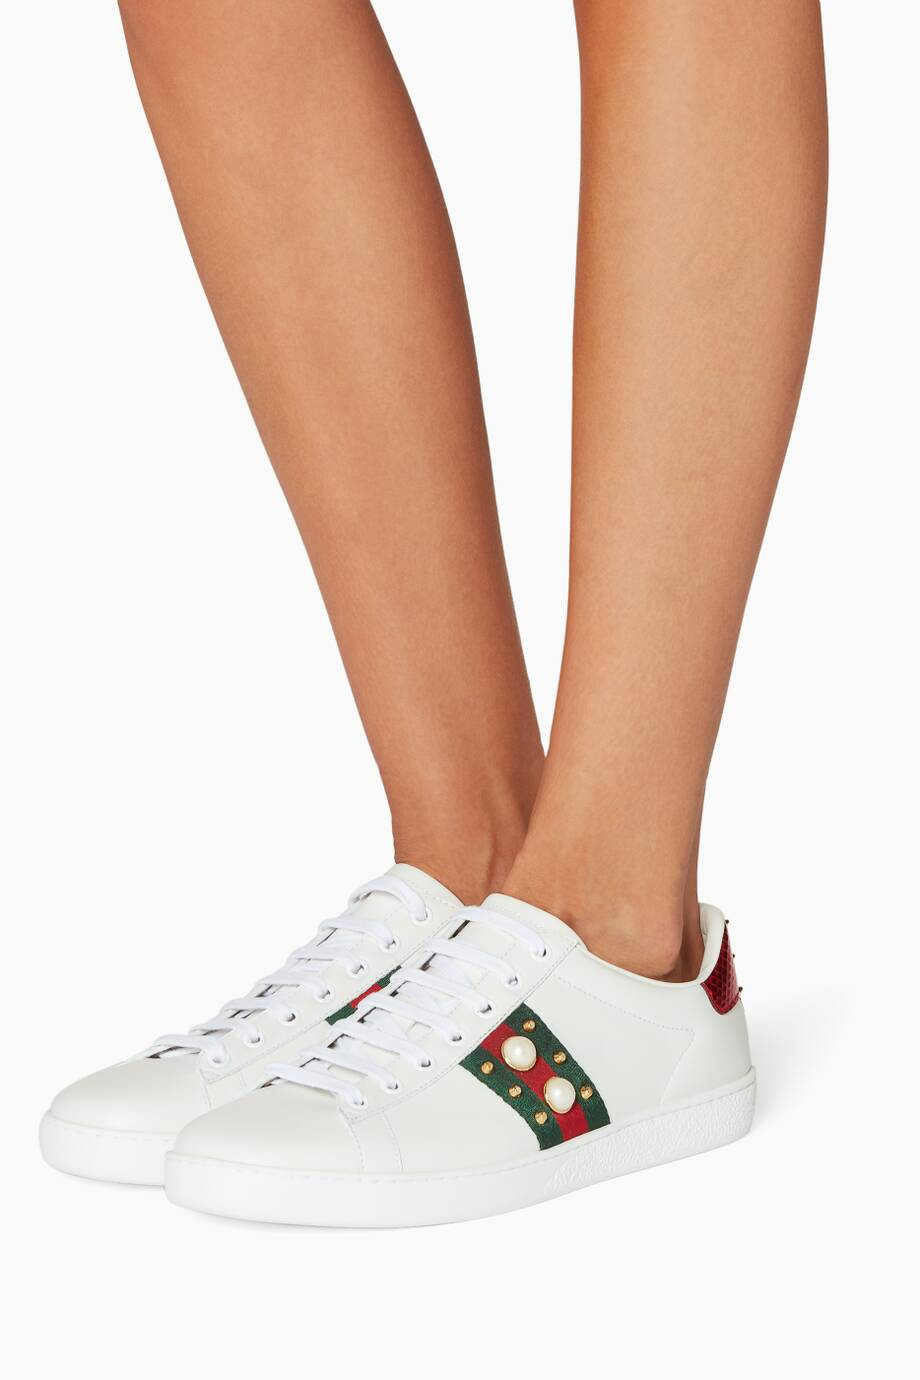 65590d4029a Shop Luxury Gucci White Ace Studded Leather Low-top Sneakers ...